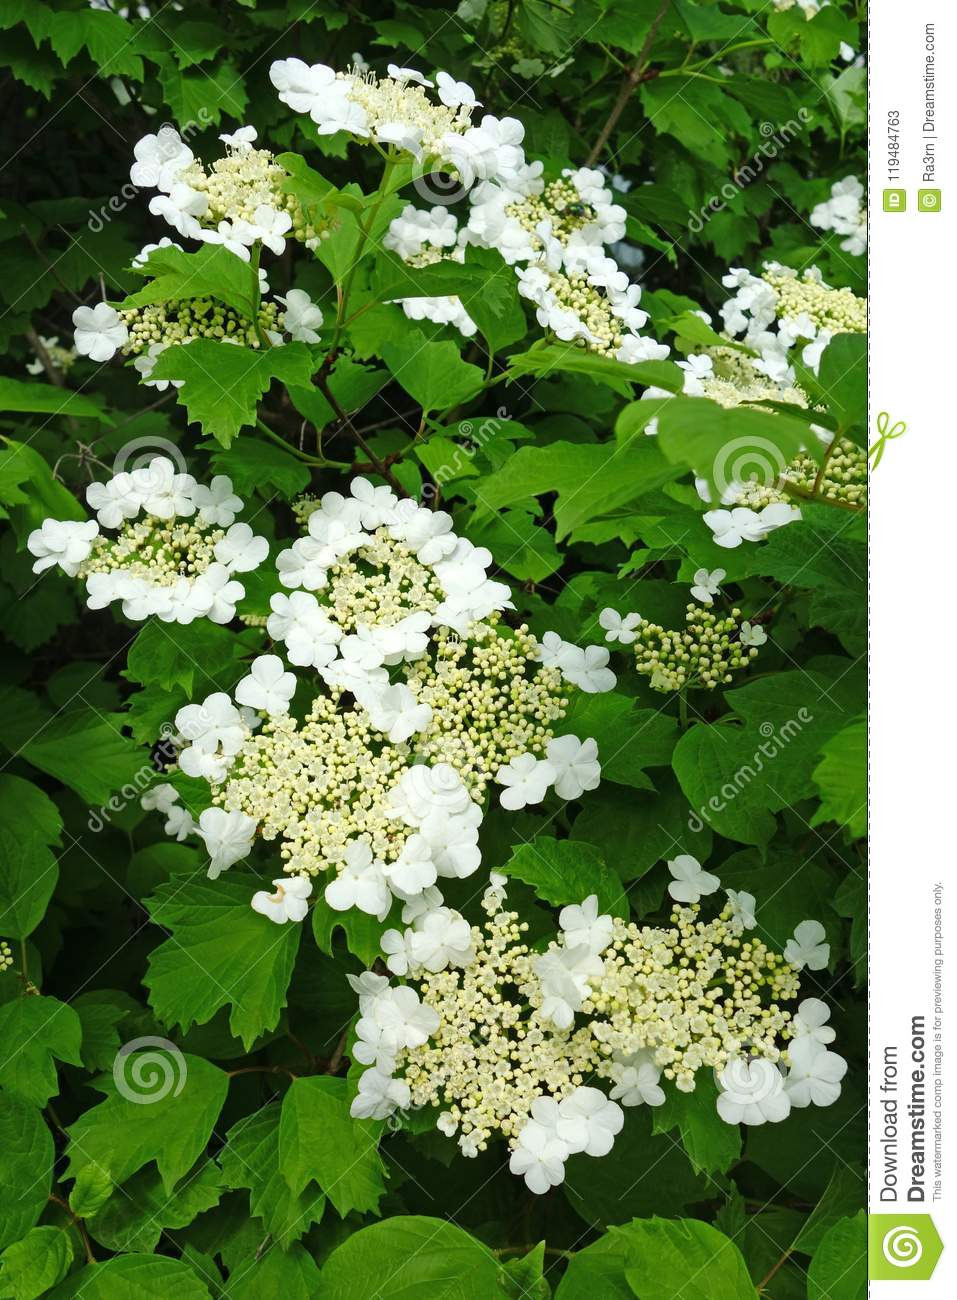 White Flowers Of The Viburnum Stock Image Image Of Snowball Bush